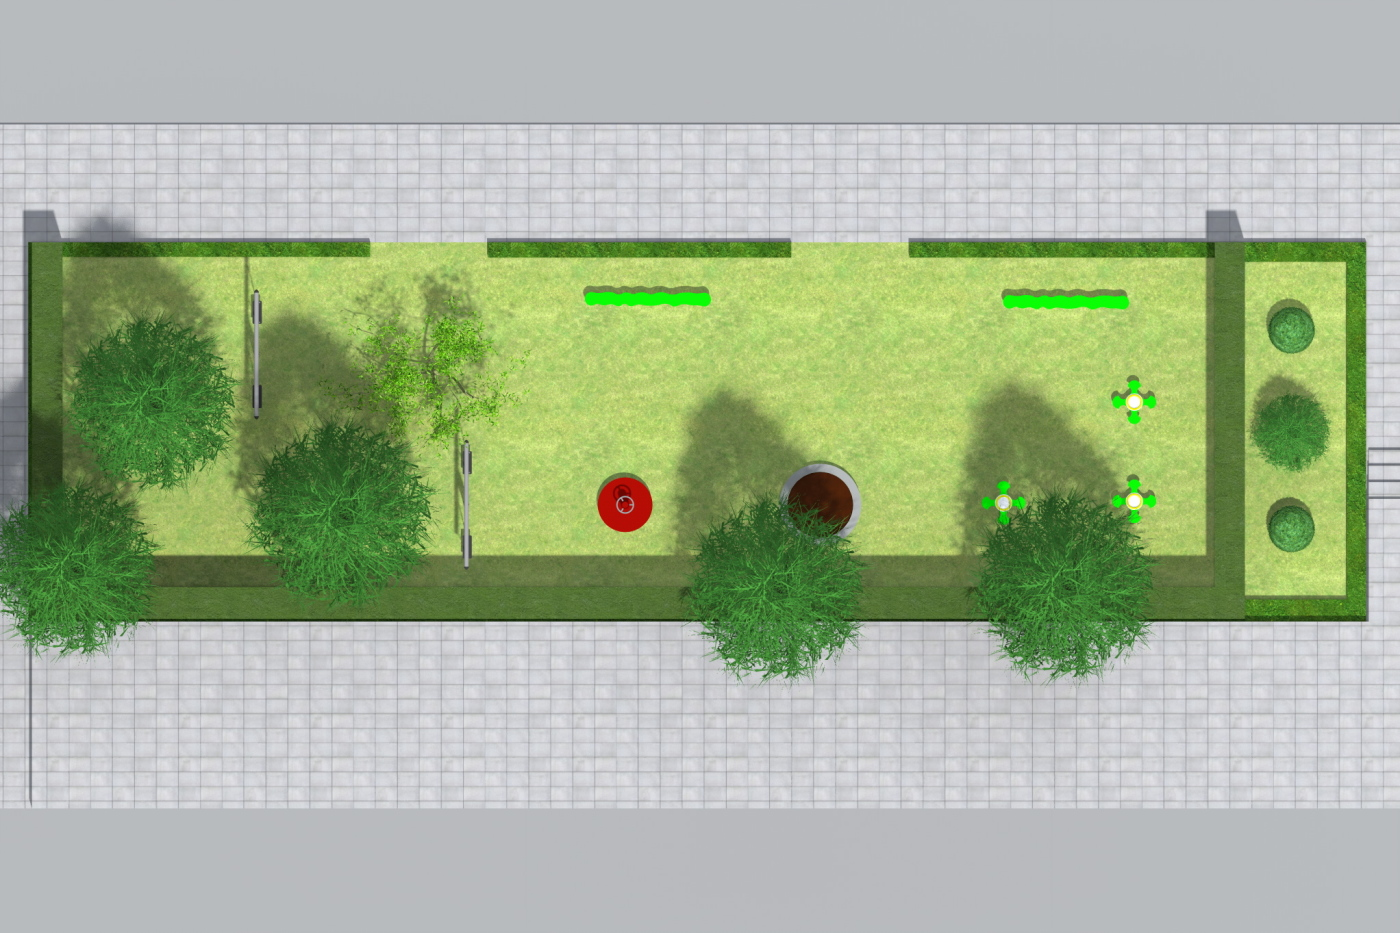 School entry garden plan